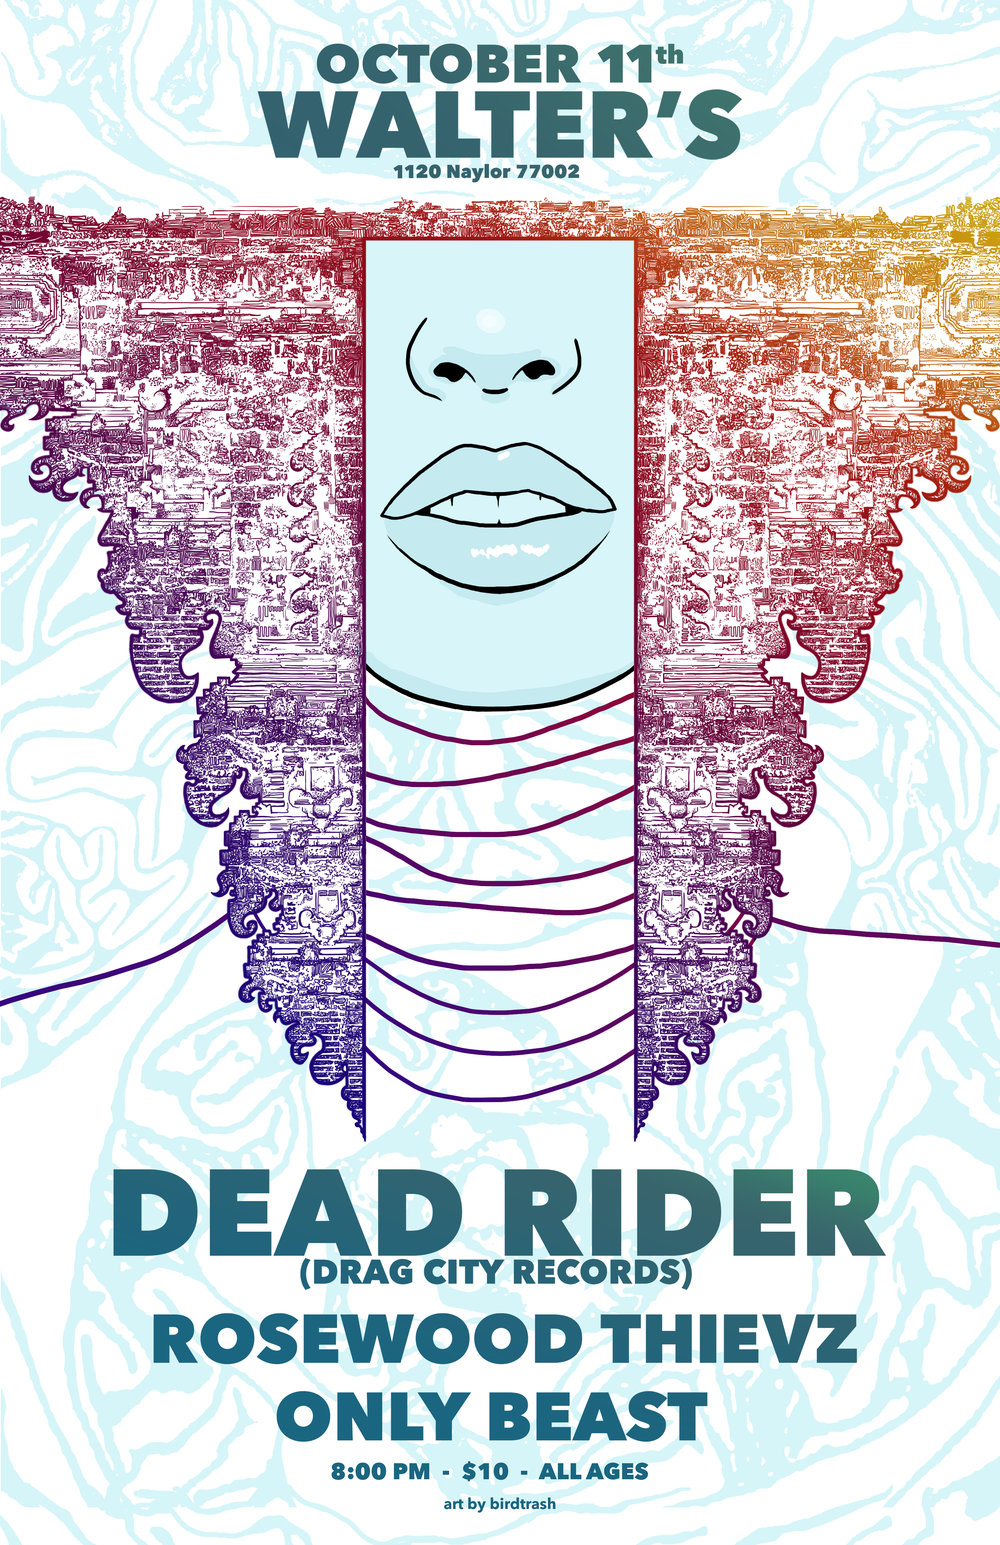 dead rider oct 11 (DO NOT PRINT - DIGITAL ONLY) (1).jpg